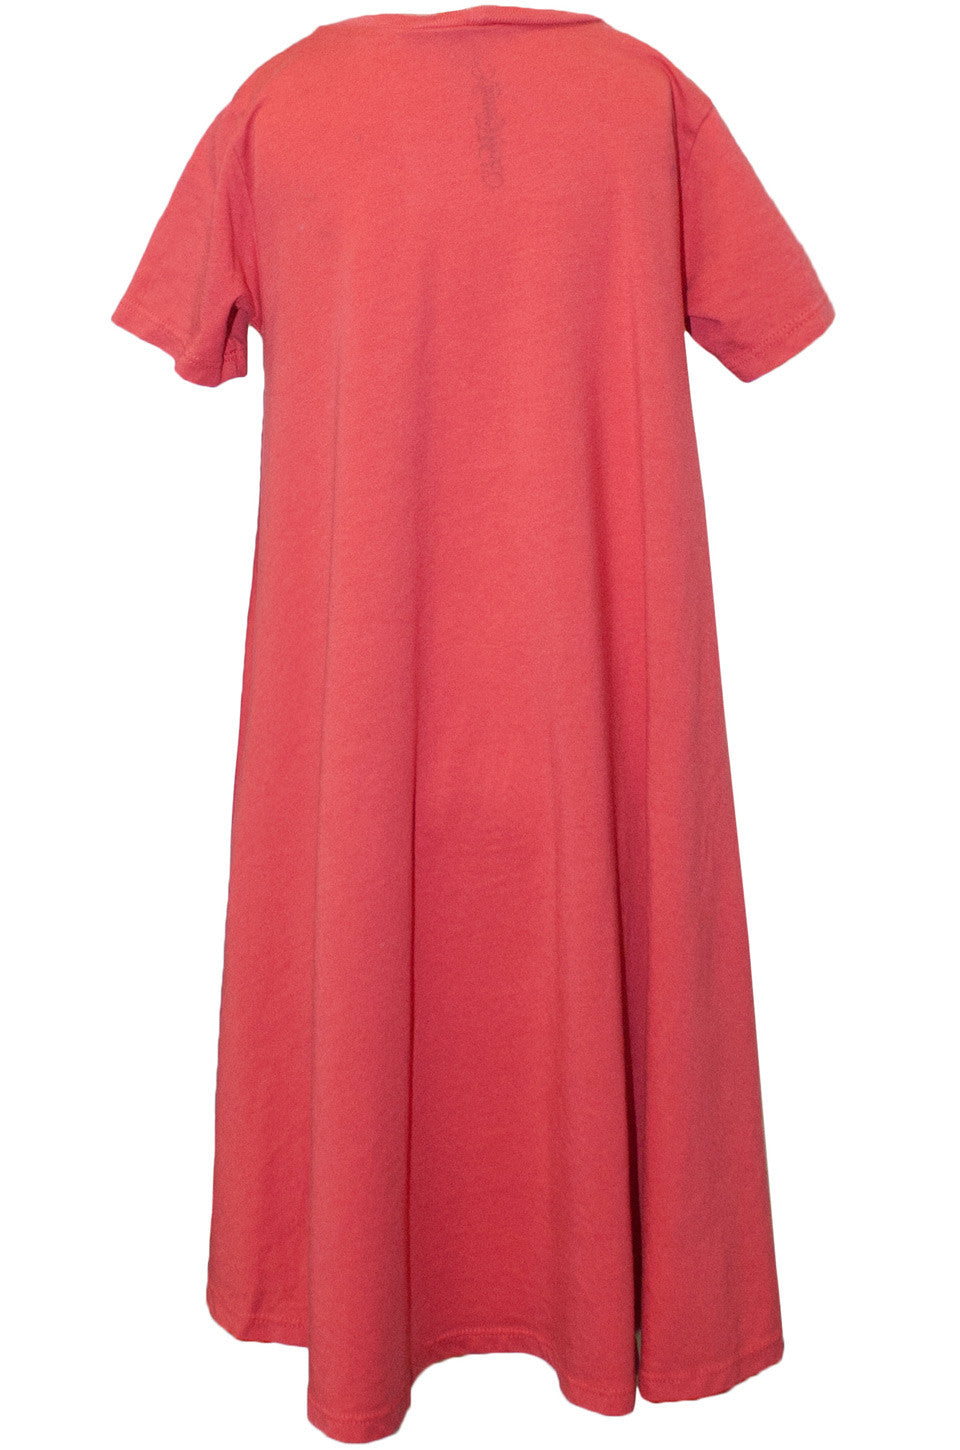 Beauty Color Record Short Sleeve Swing Dress - Lauren Moshi - 5